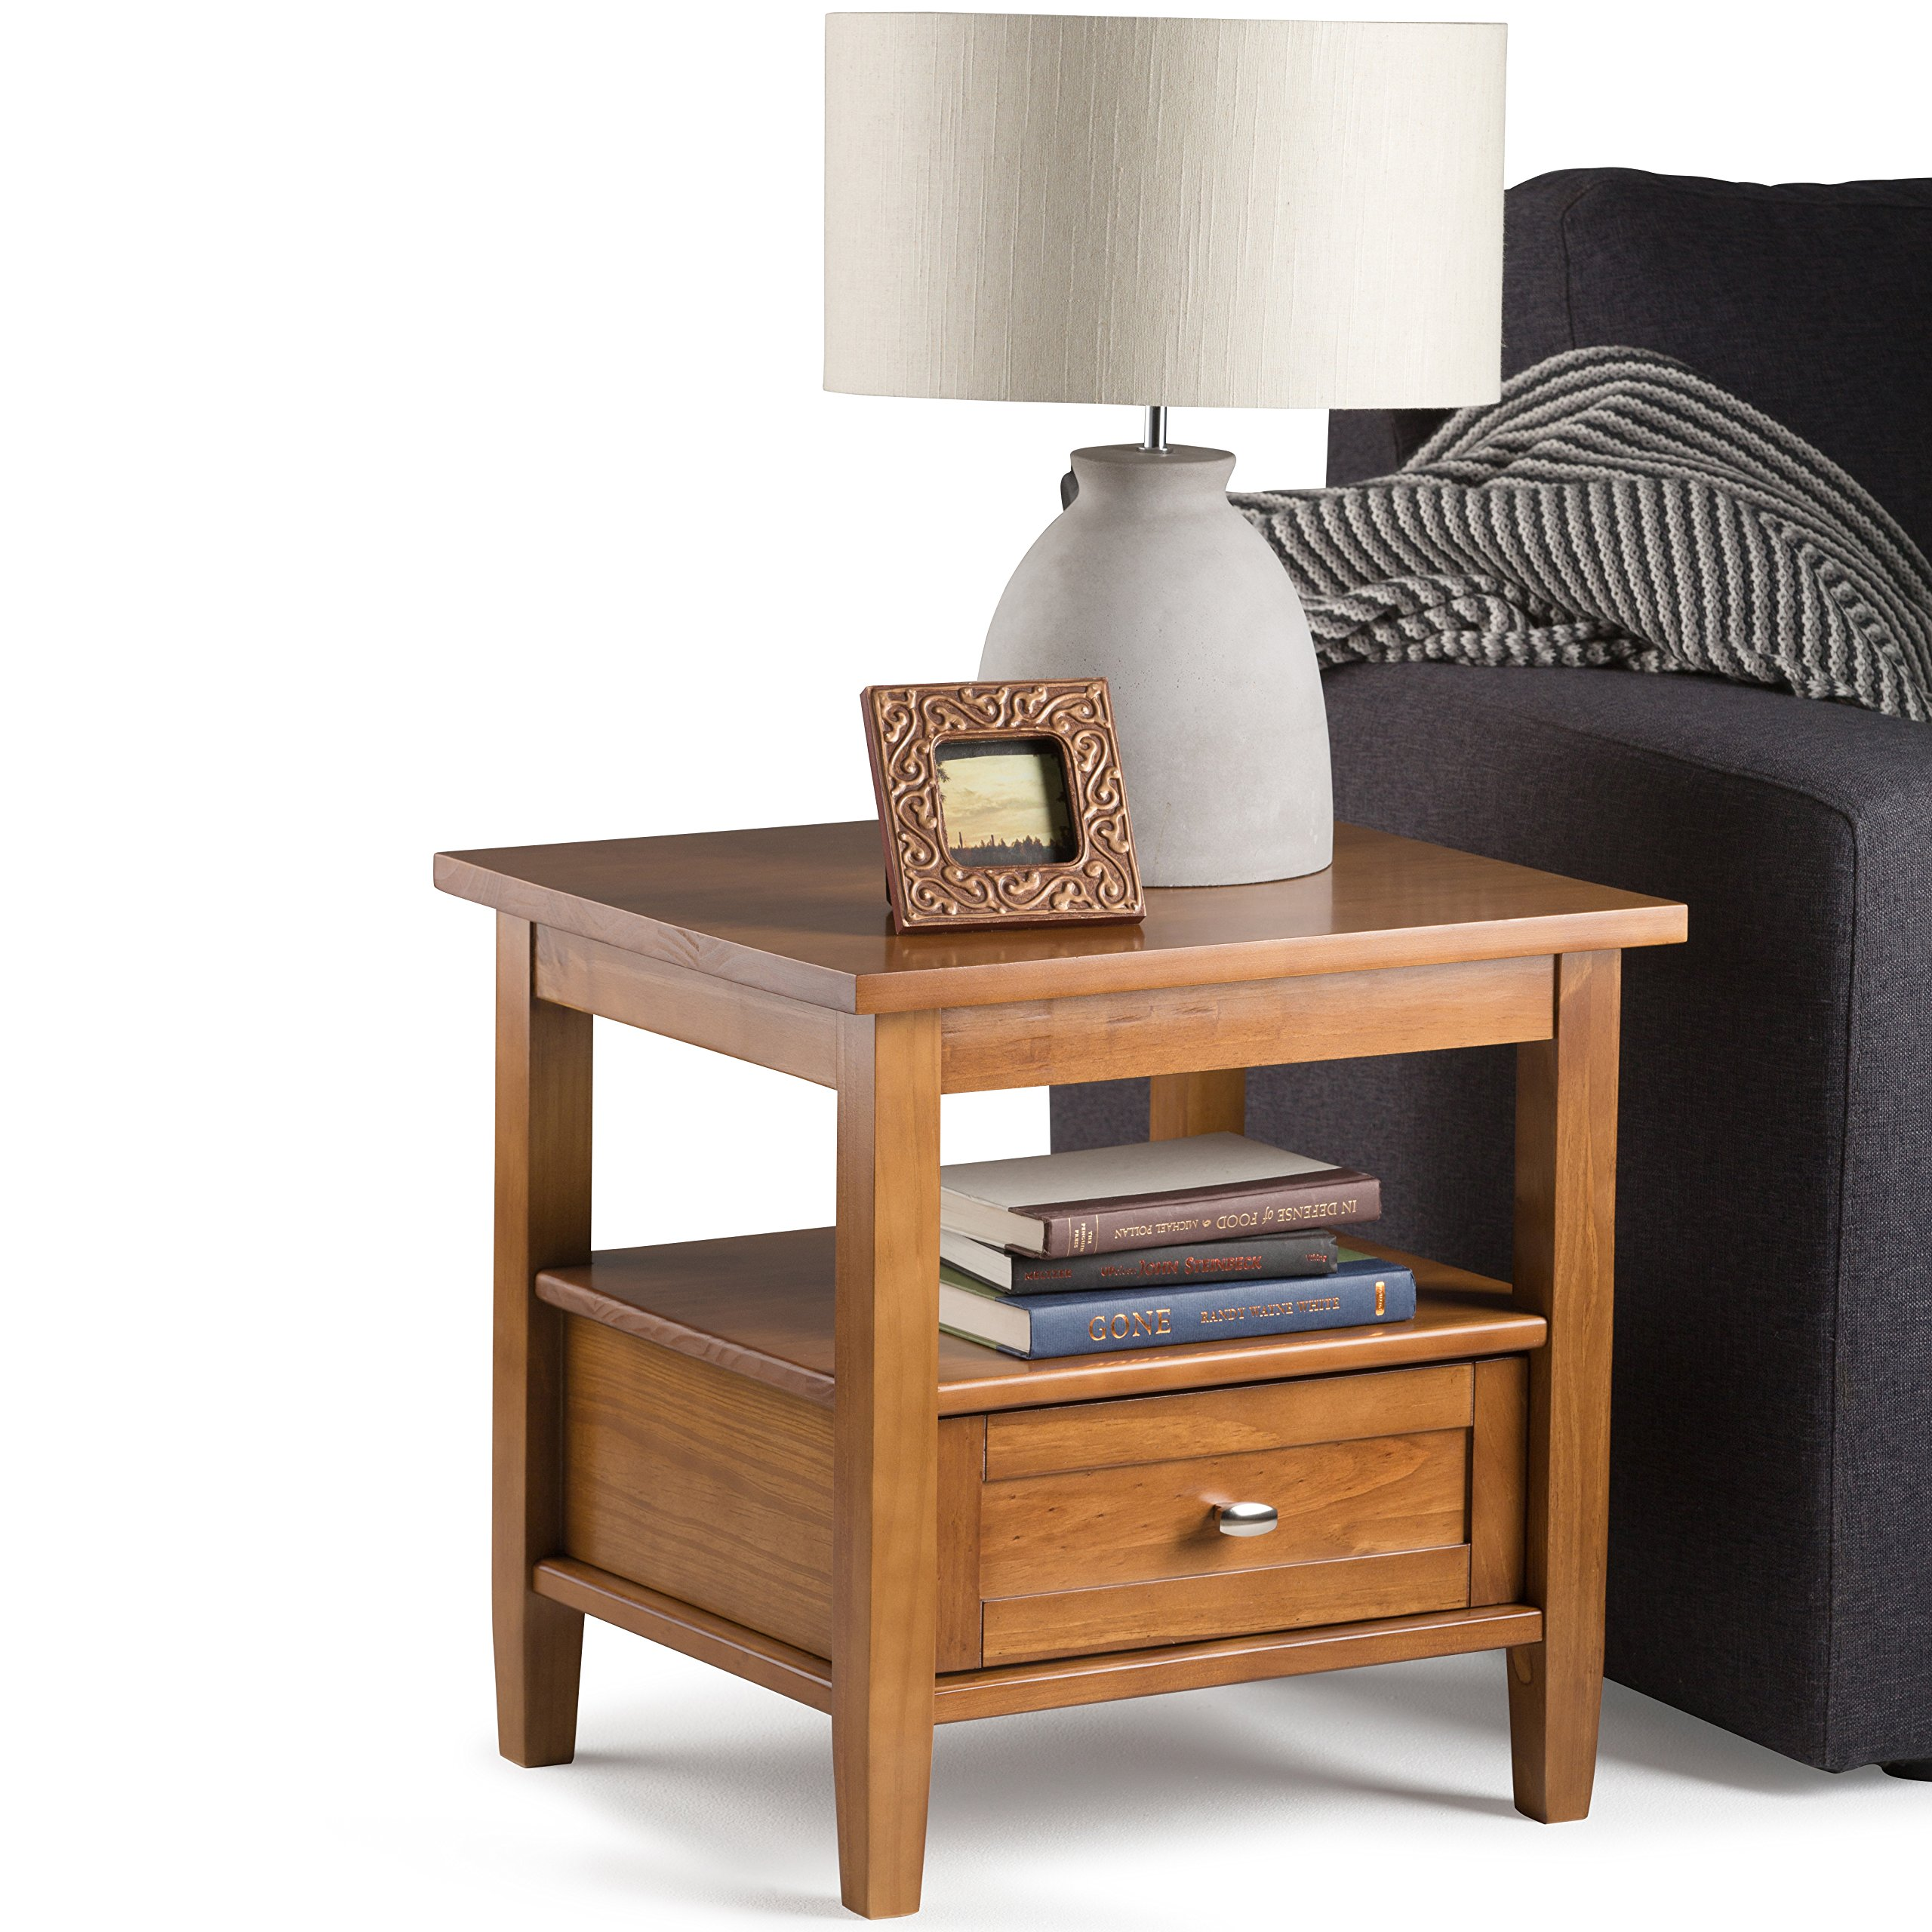 Simpli Home Warm Shaker Solid Wood End Table, Honey Brown by Simpli Home (Image #3)